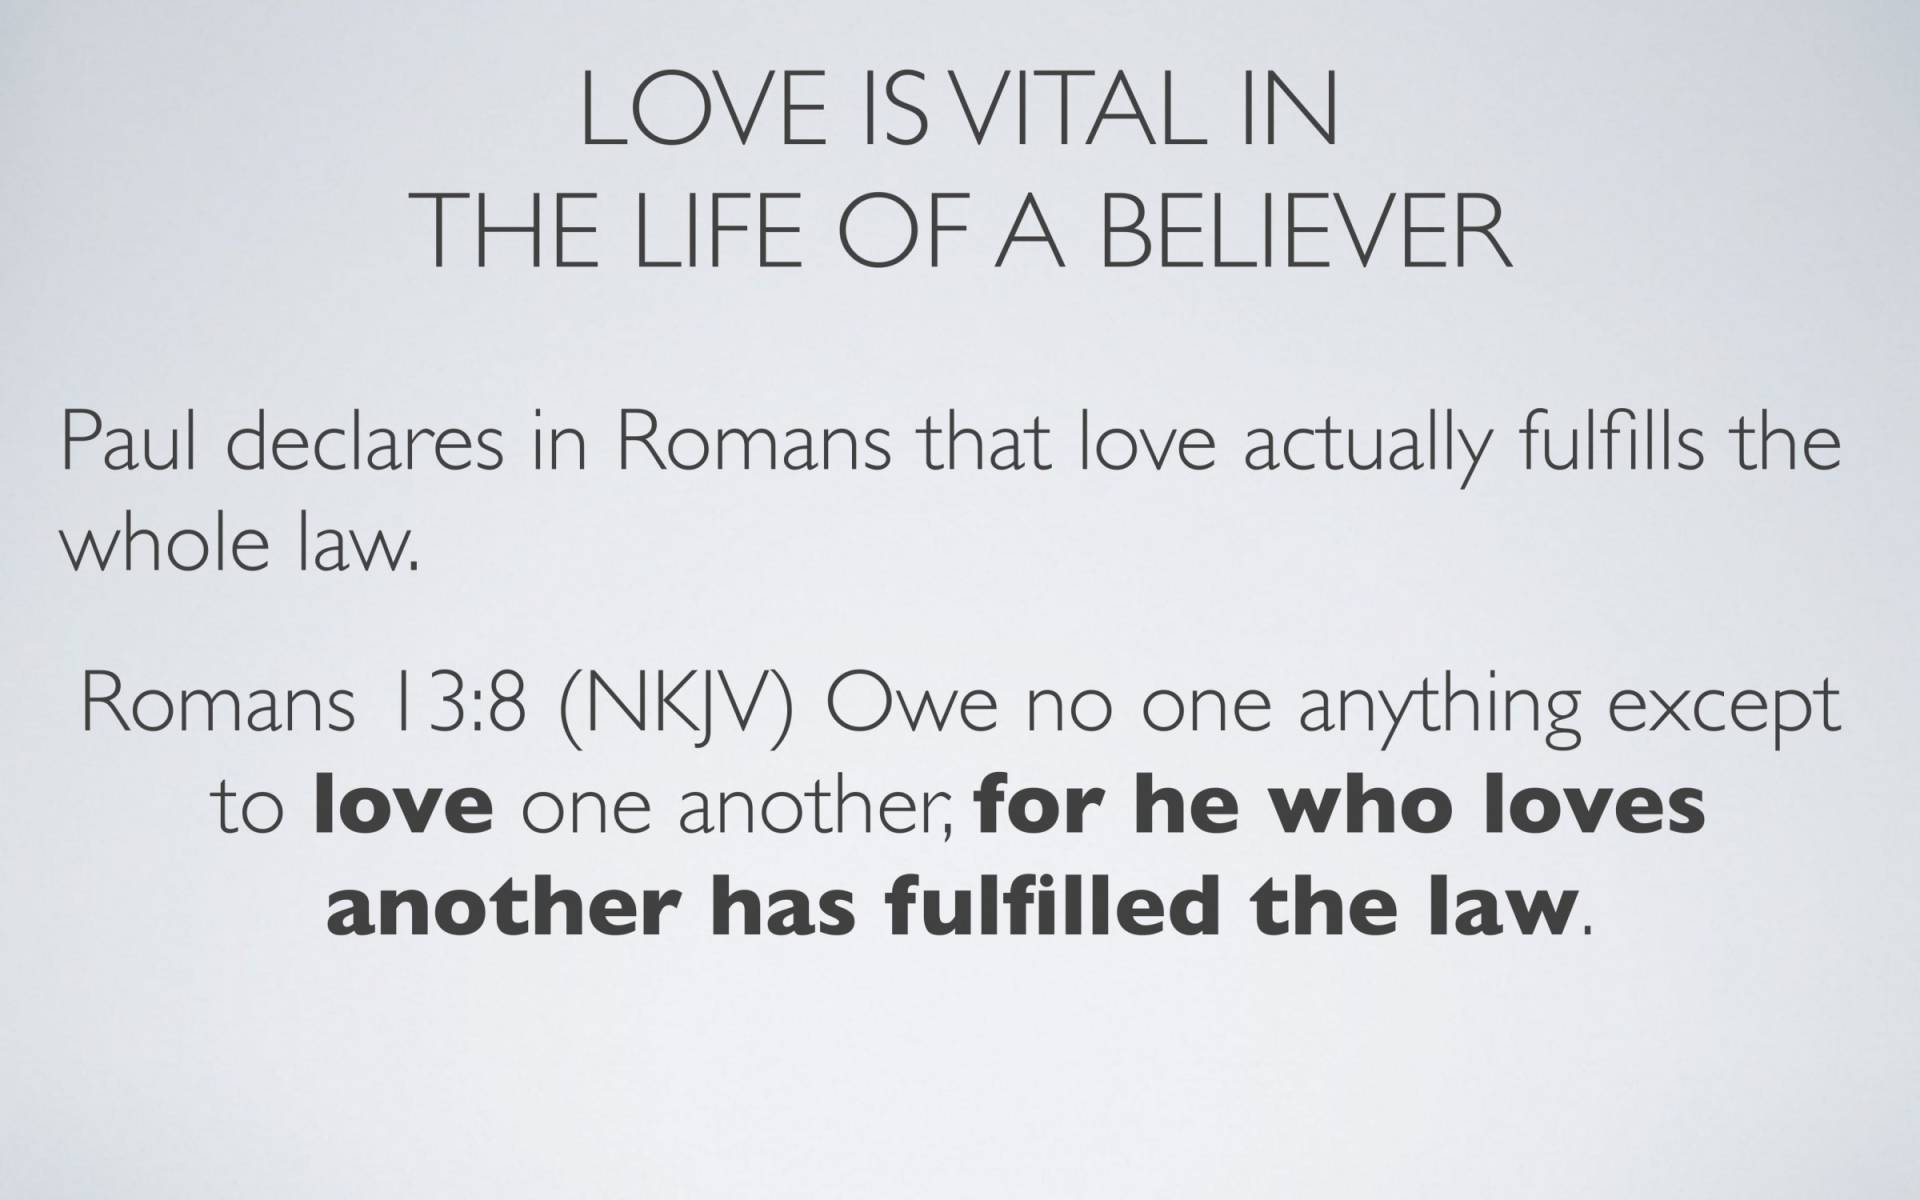 BC&D-34 - Lesson 13-2 - The Source Of The River Of Love That Is To Flow Out Of The Life Of A Believer-07